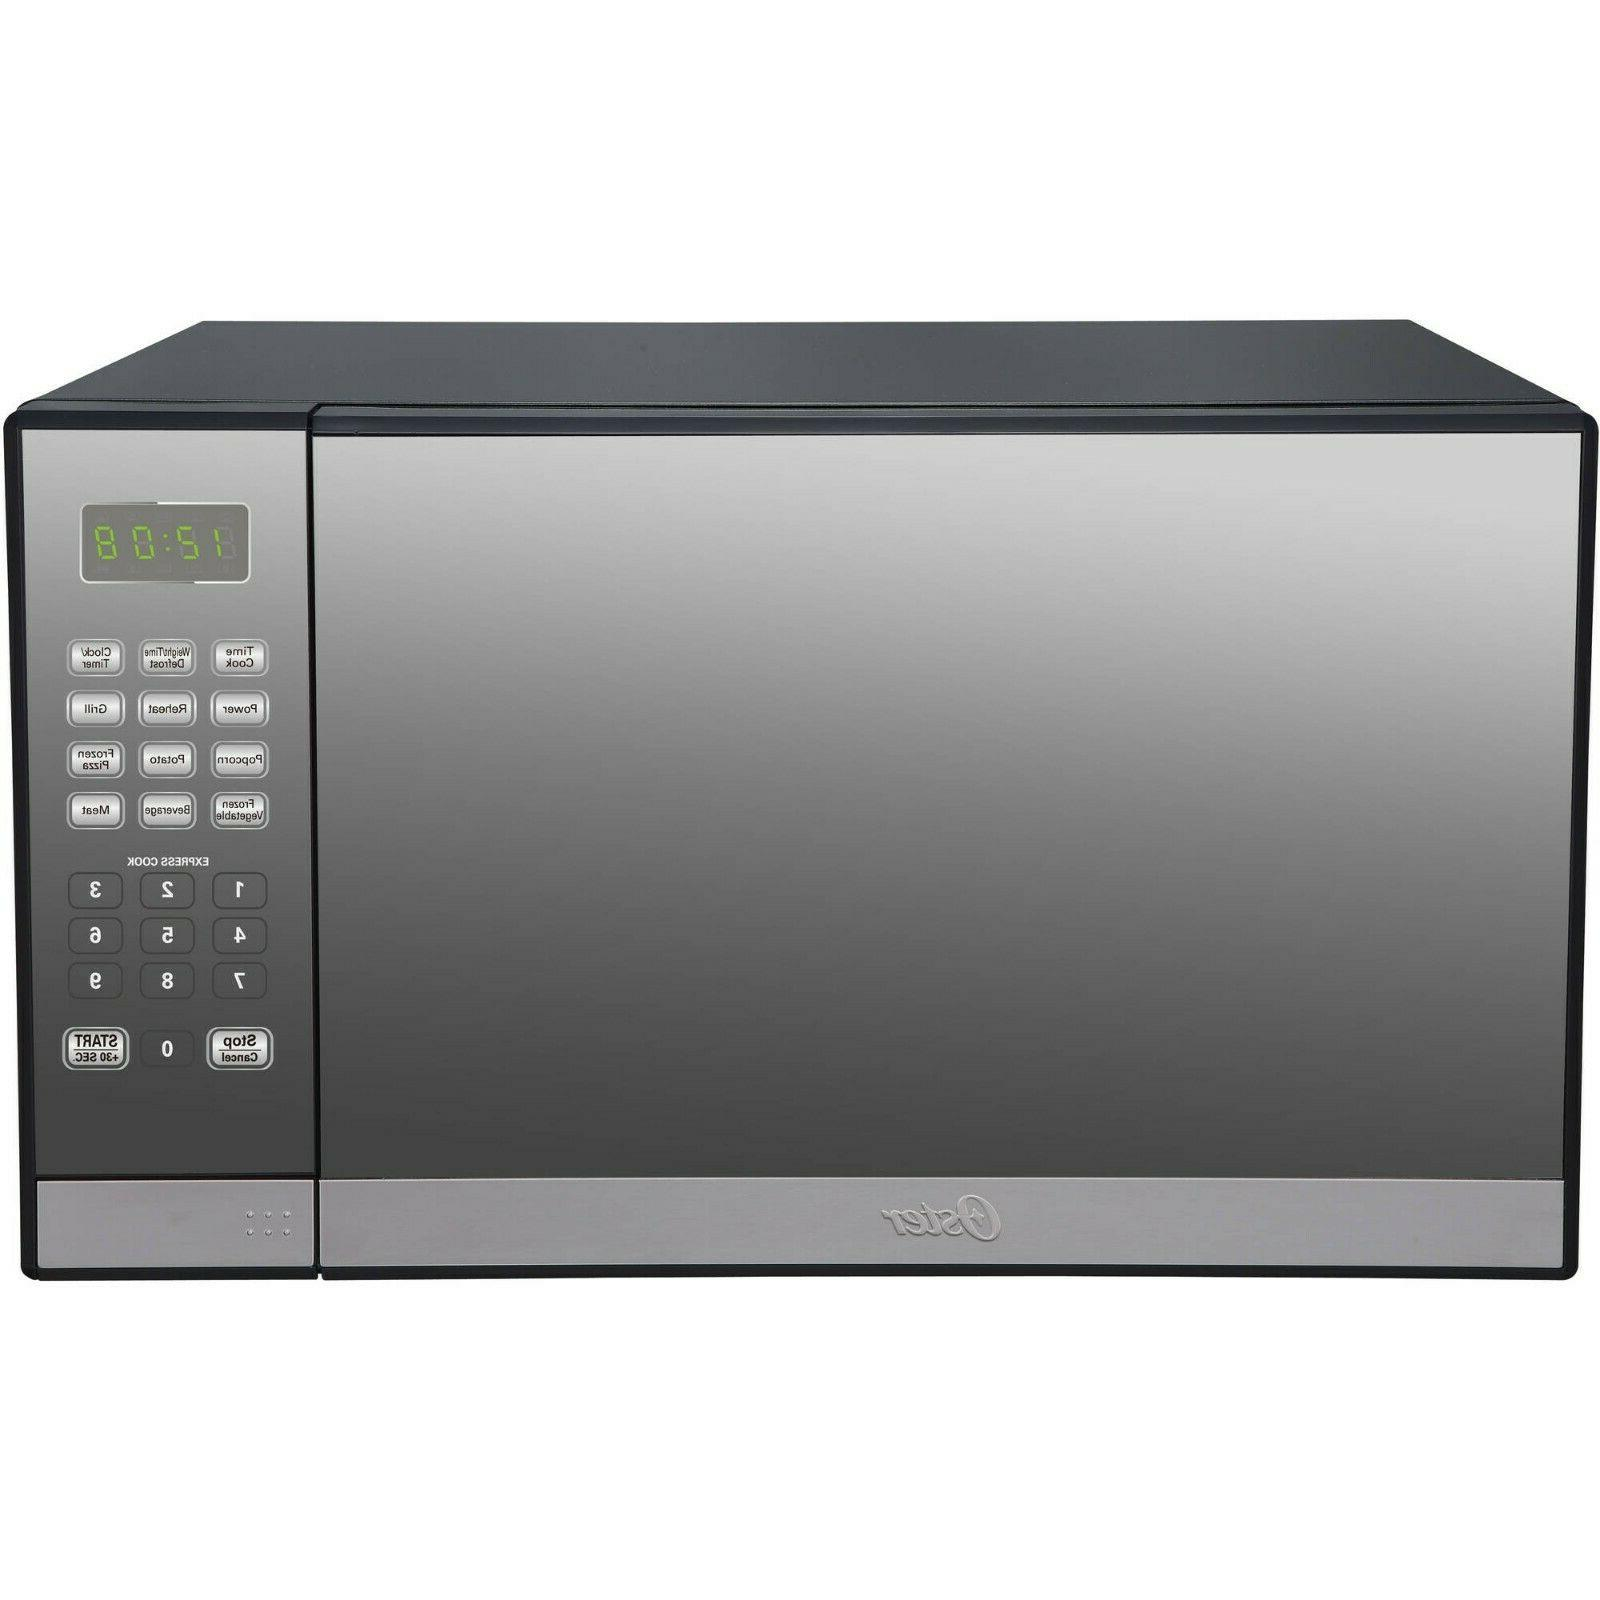 Oster 1.3 Cu. Ft Stainless Steel Mirror Microwave Oven With